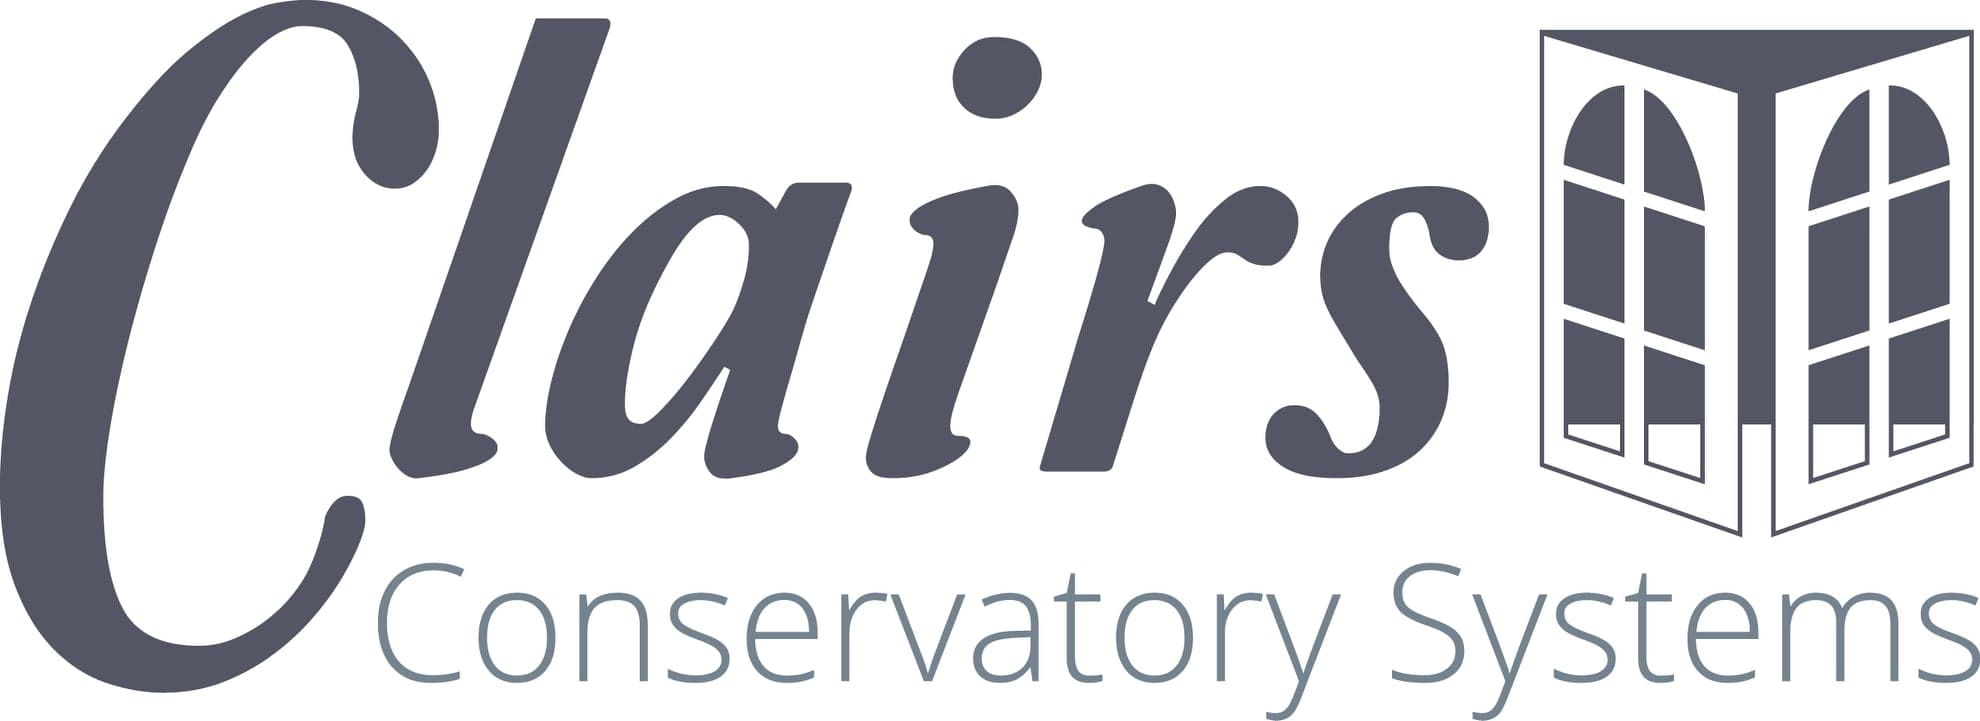 Clair's Conservatory Systems